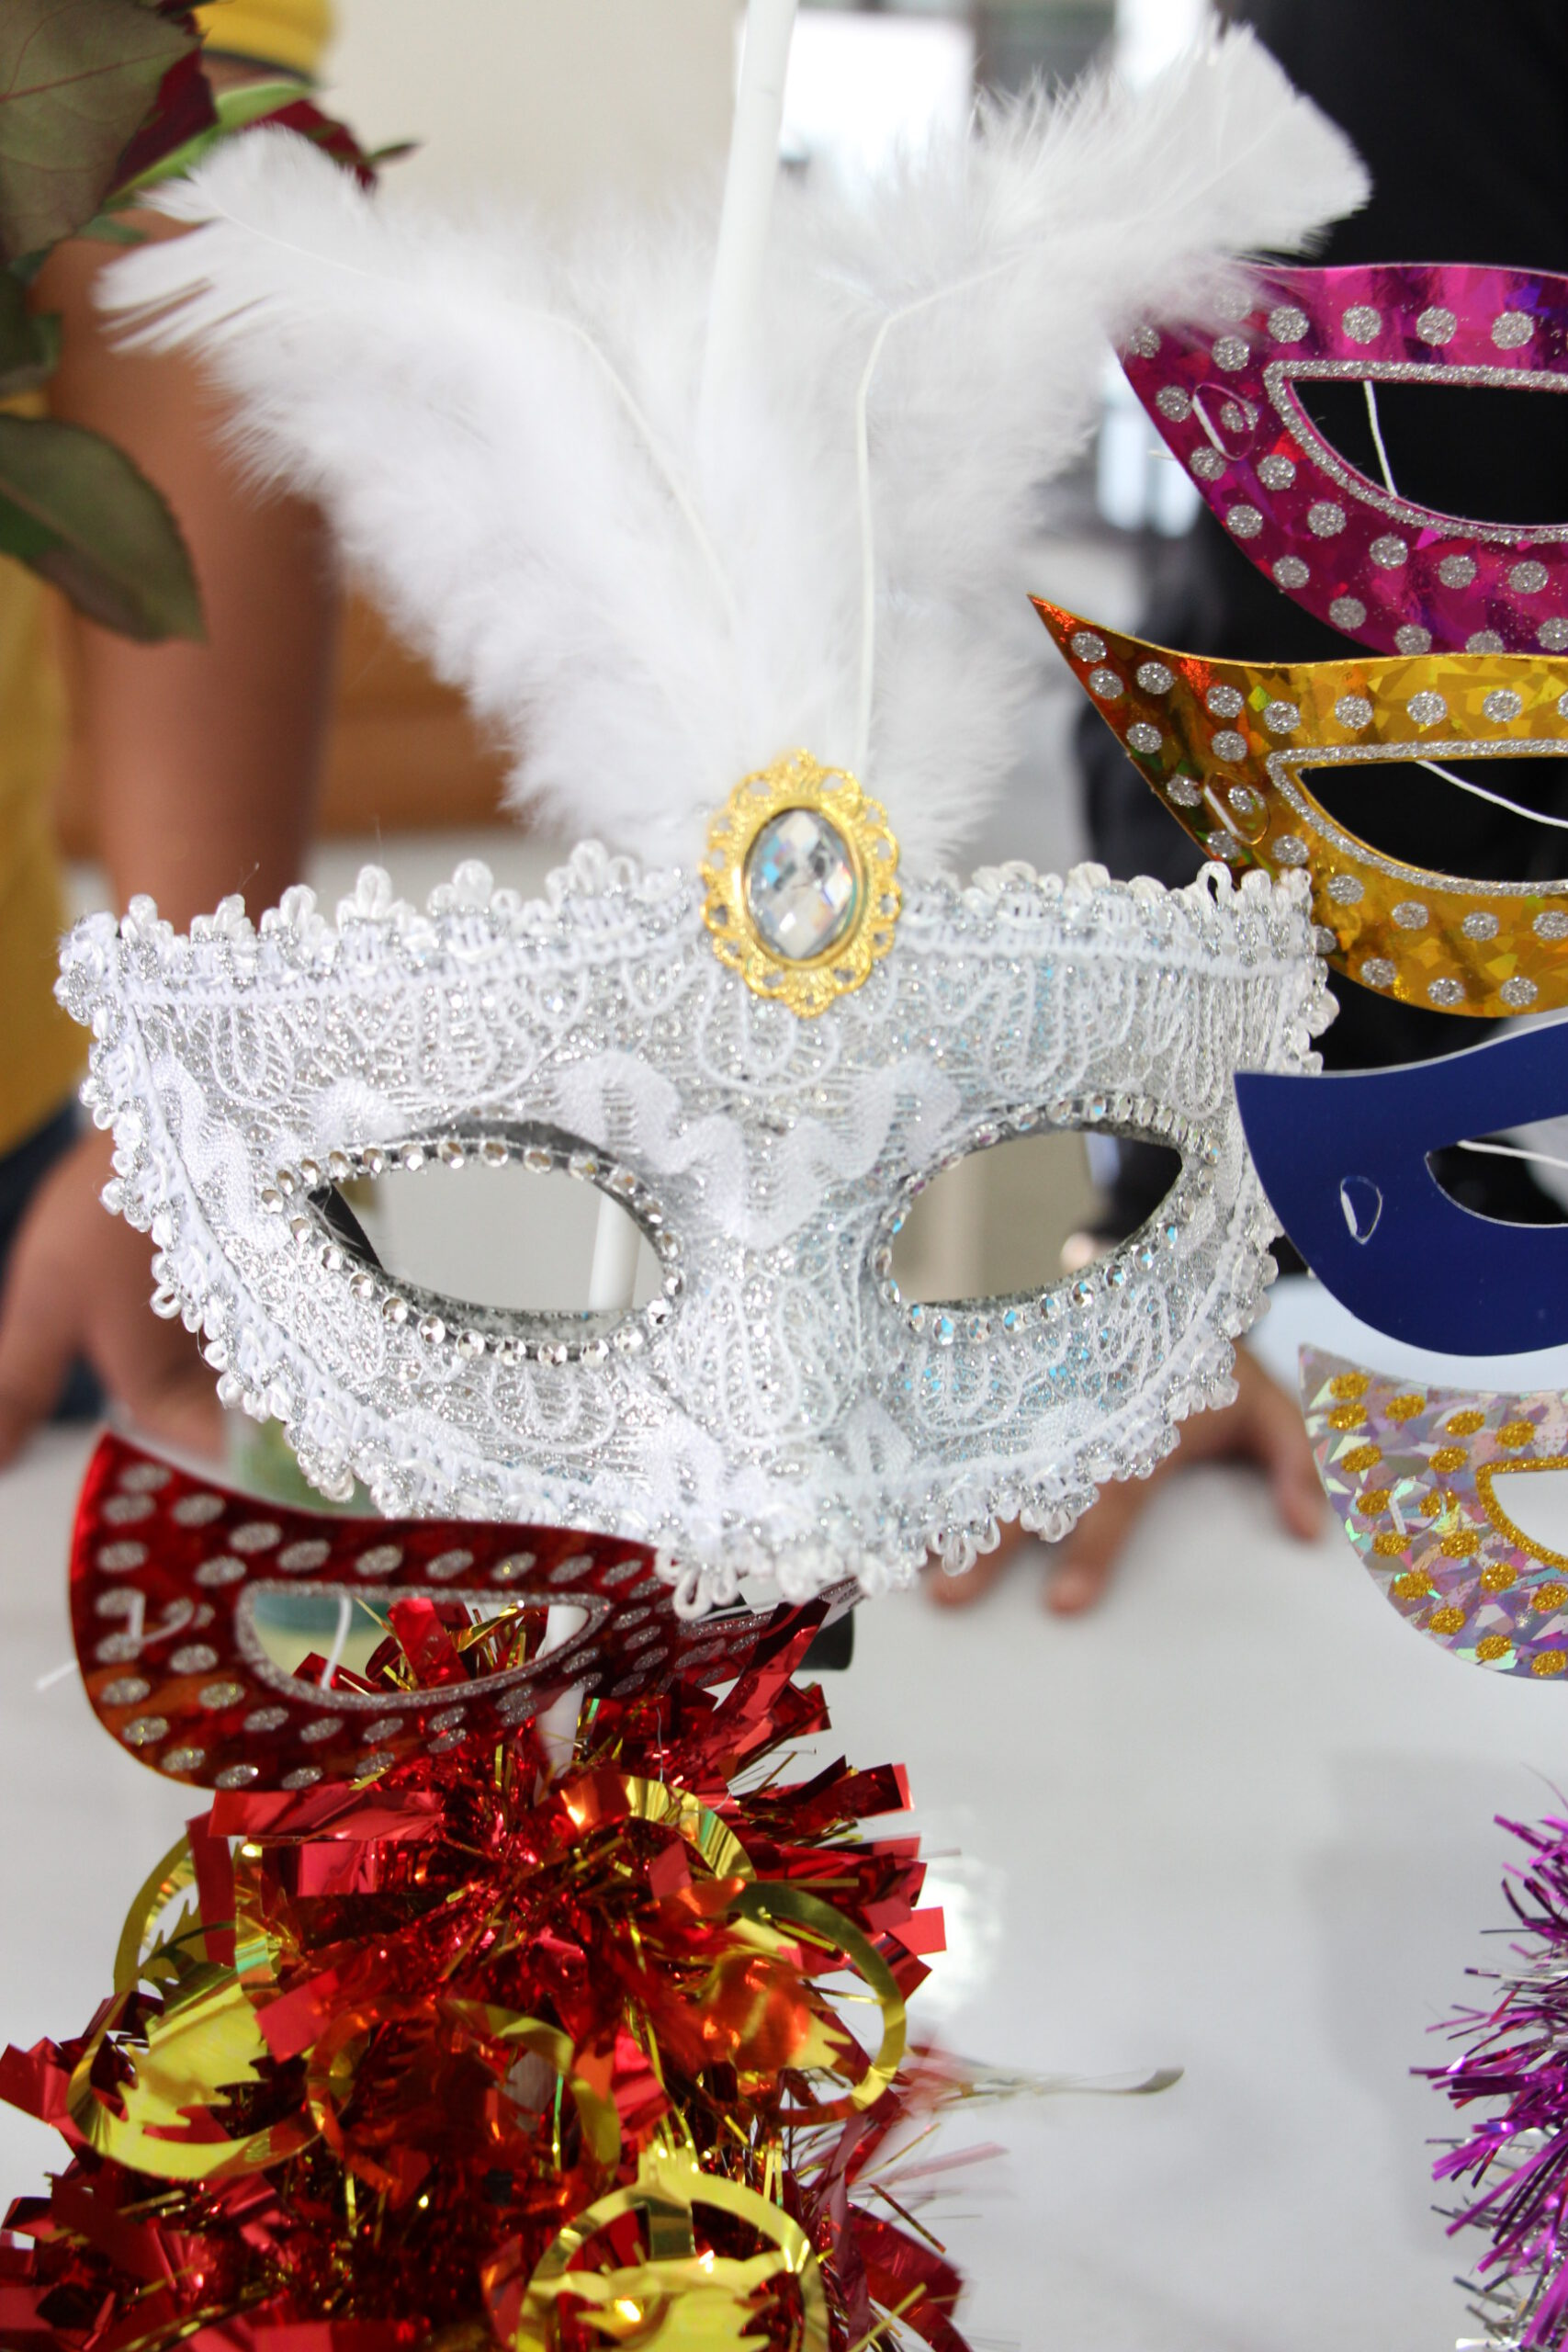 MASK NEW YEAR RARTY